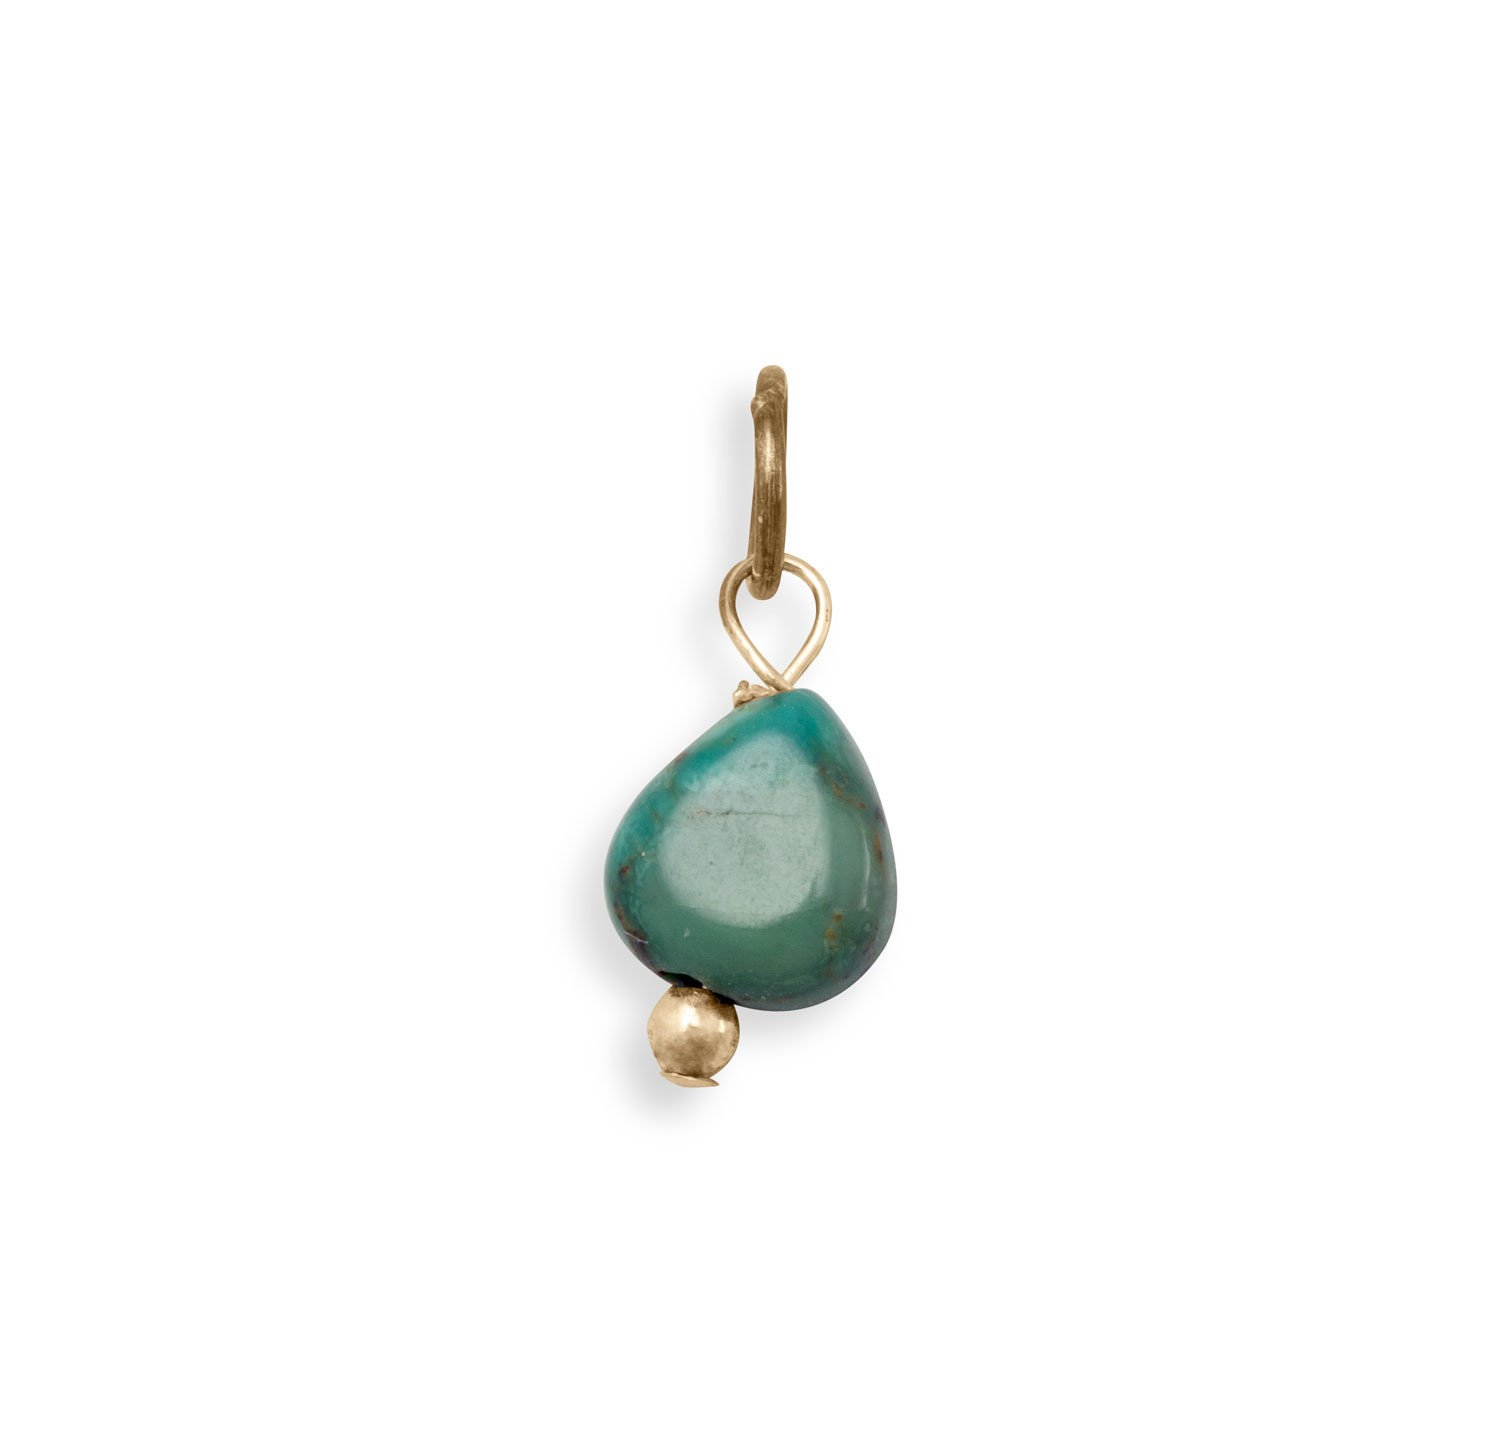 14/20 Gold Filled Reconstituted Turquoise Nugget Charm – December Birthstone